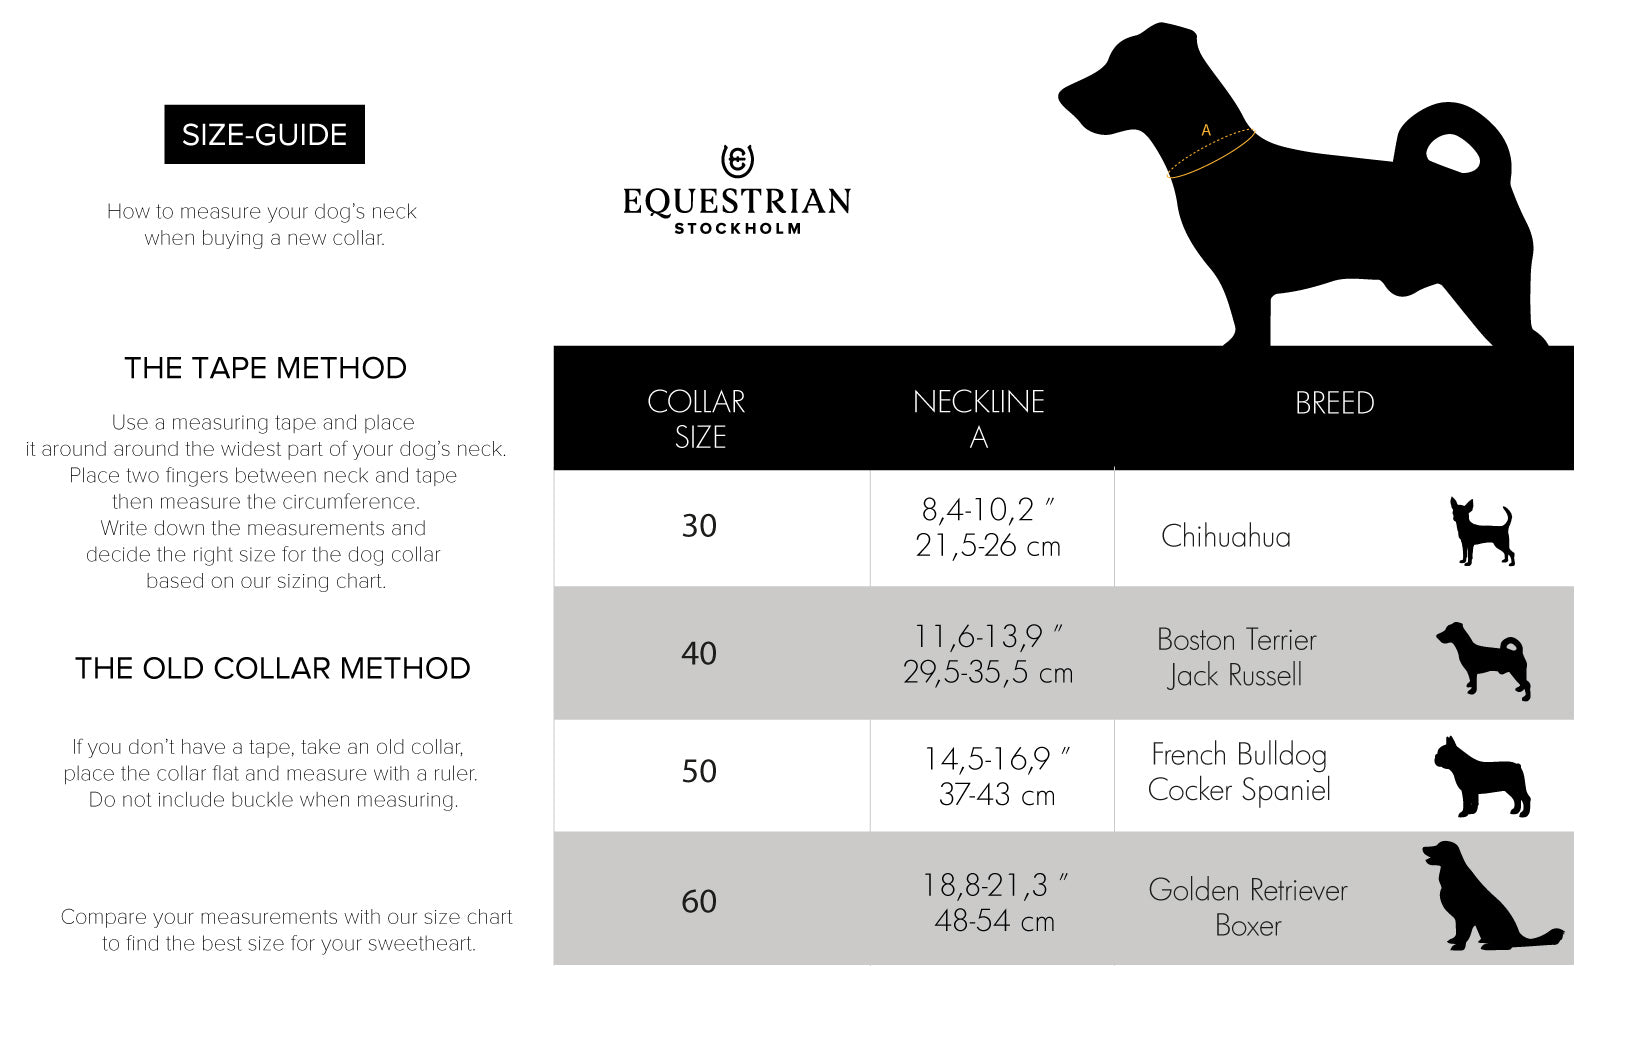 equestrian stockholm dog collar size guide